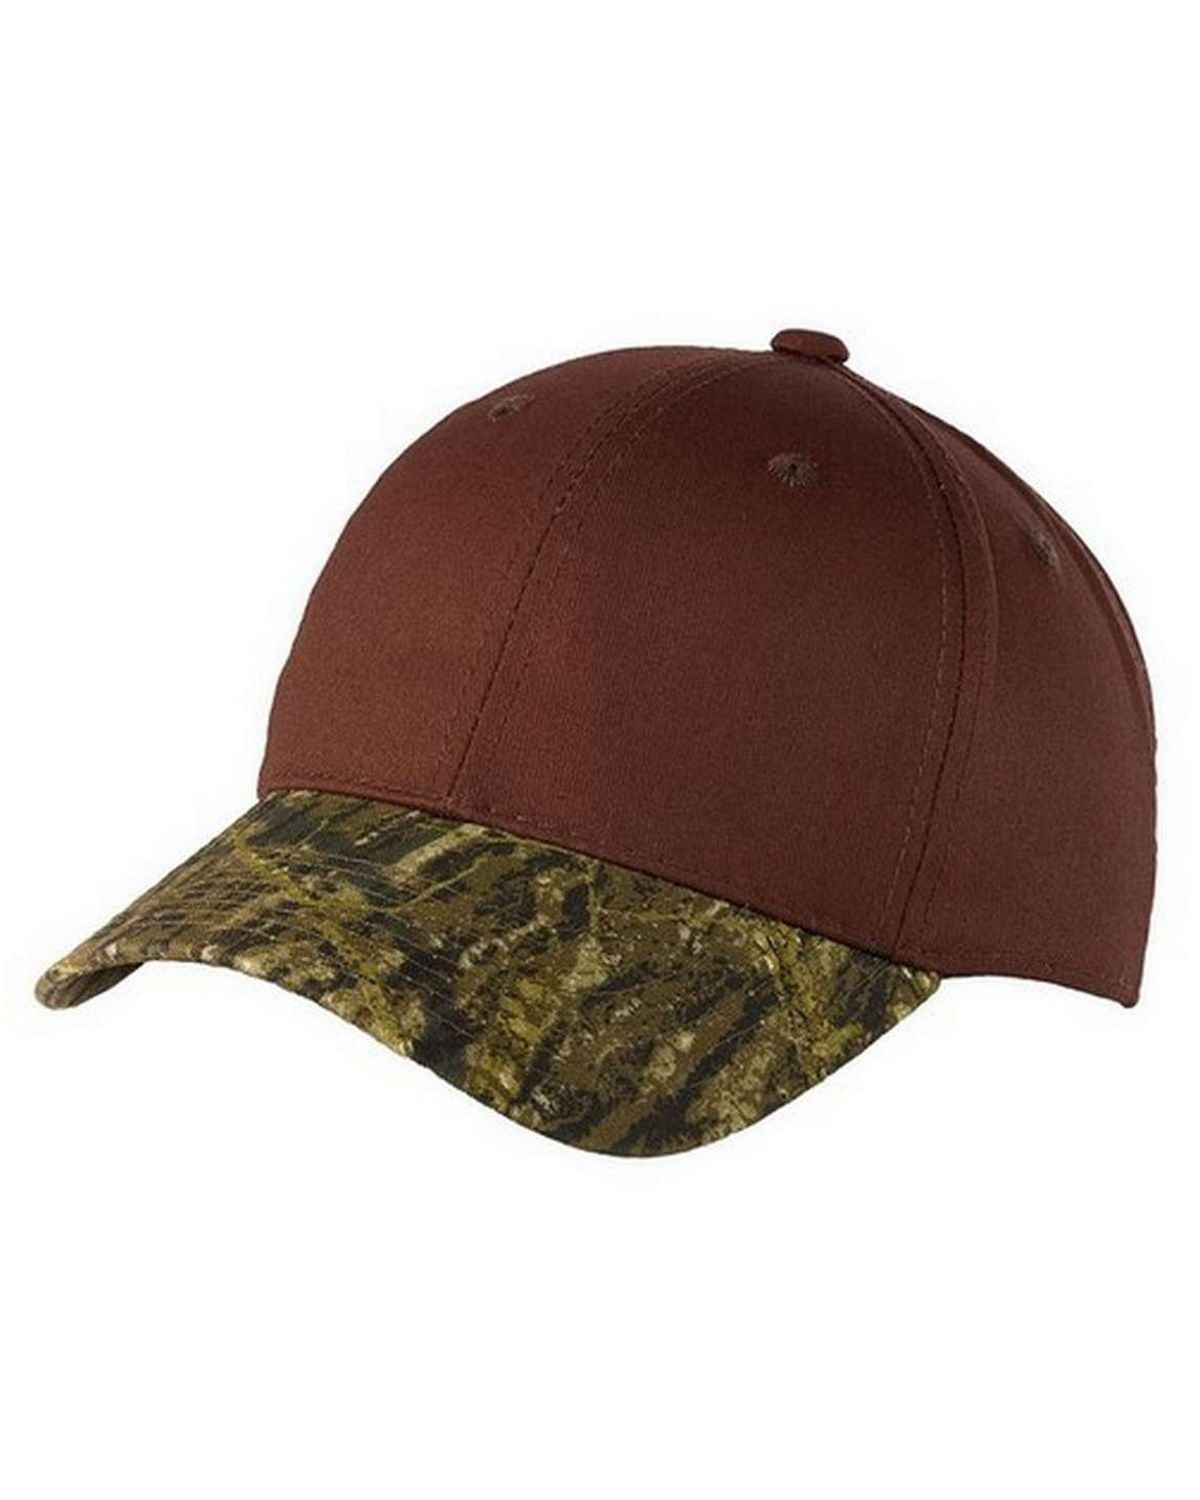 Port Authority C931 Twill Cap with Camouflage Brim